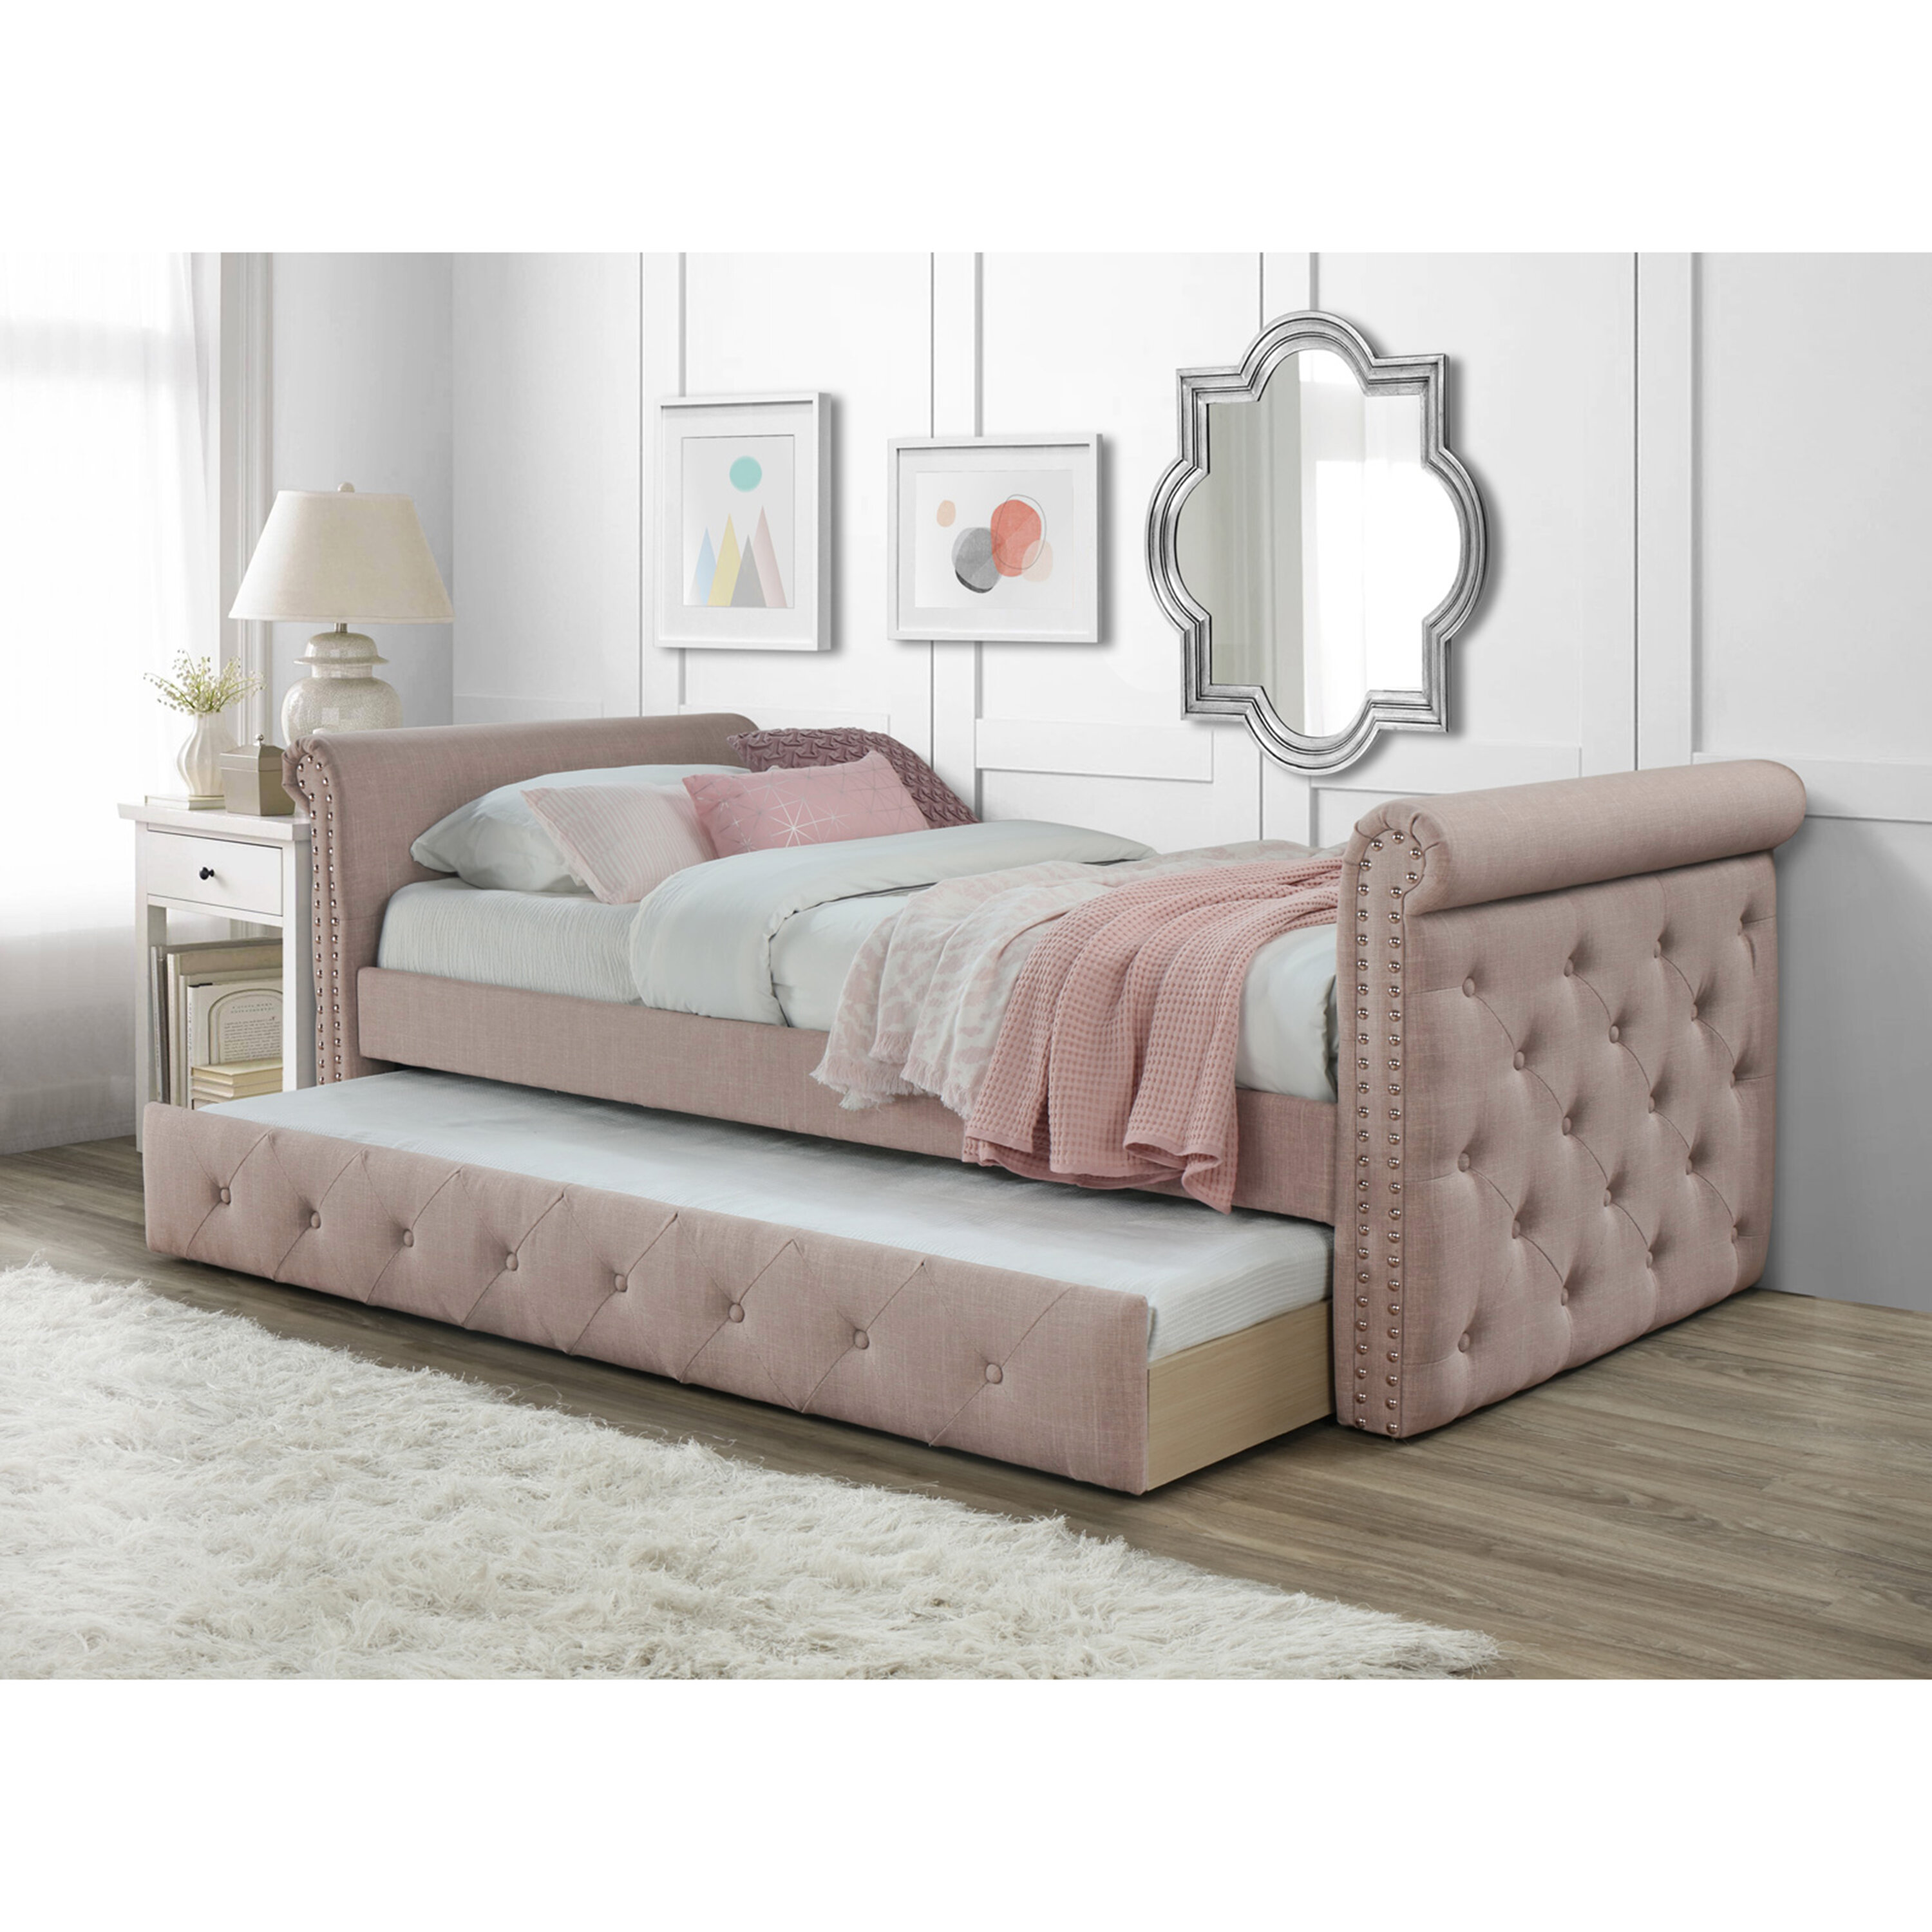 Seddon Twin Daybed With Trundle Reviews